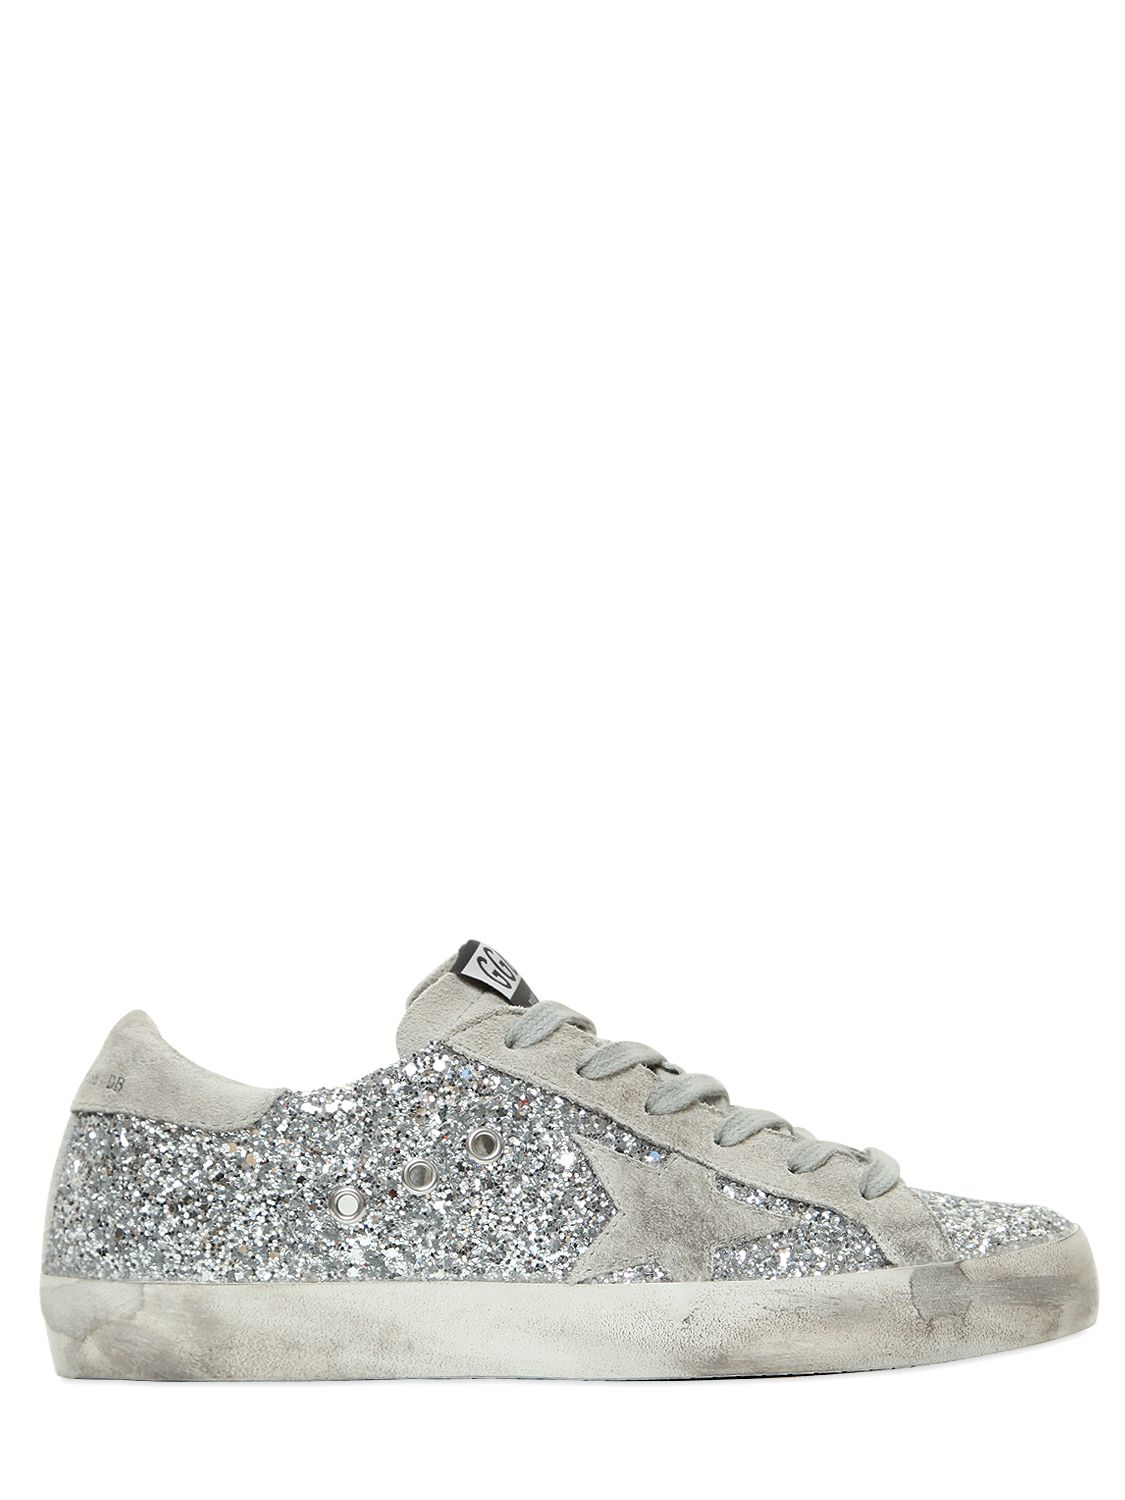 Superstar Distressed Glittered Leather And Suede Sneakers - Silver Golden Goose